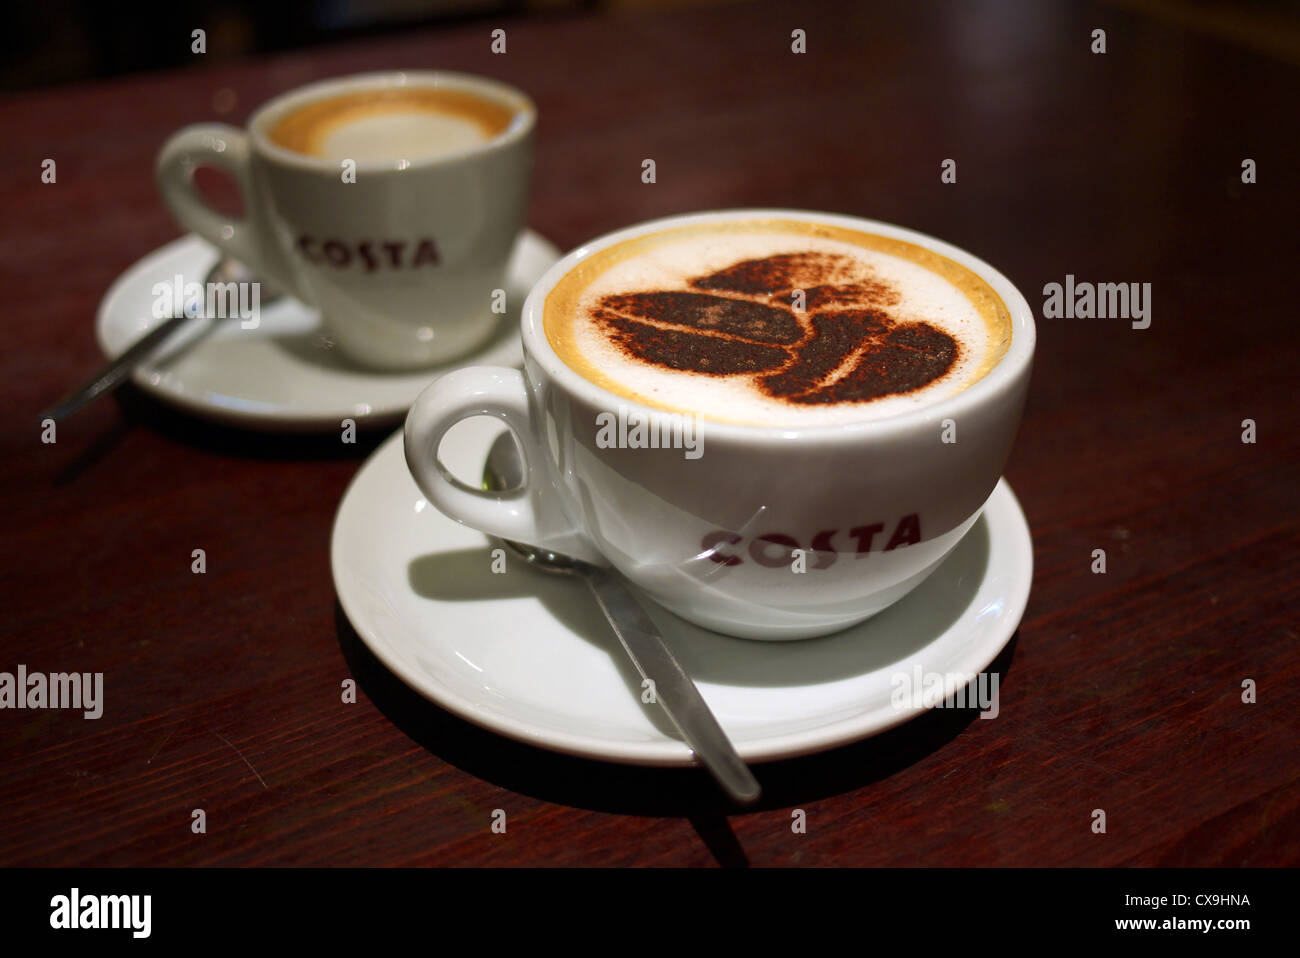 costa coffee cups stock